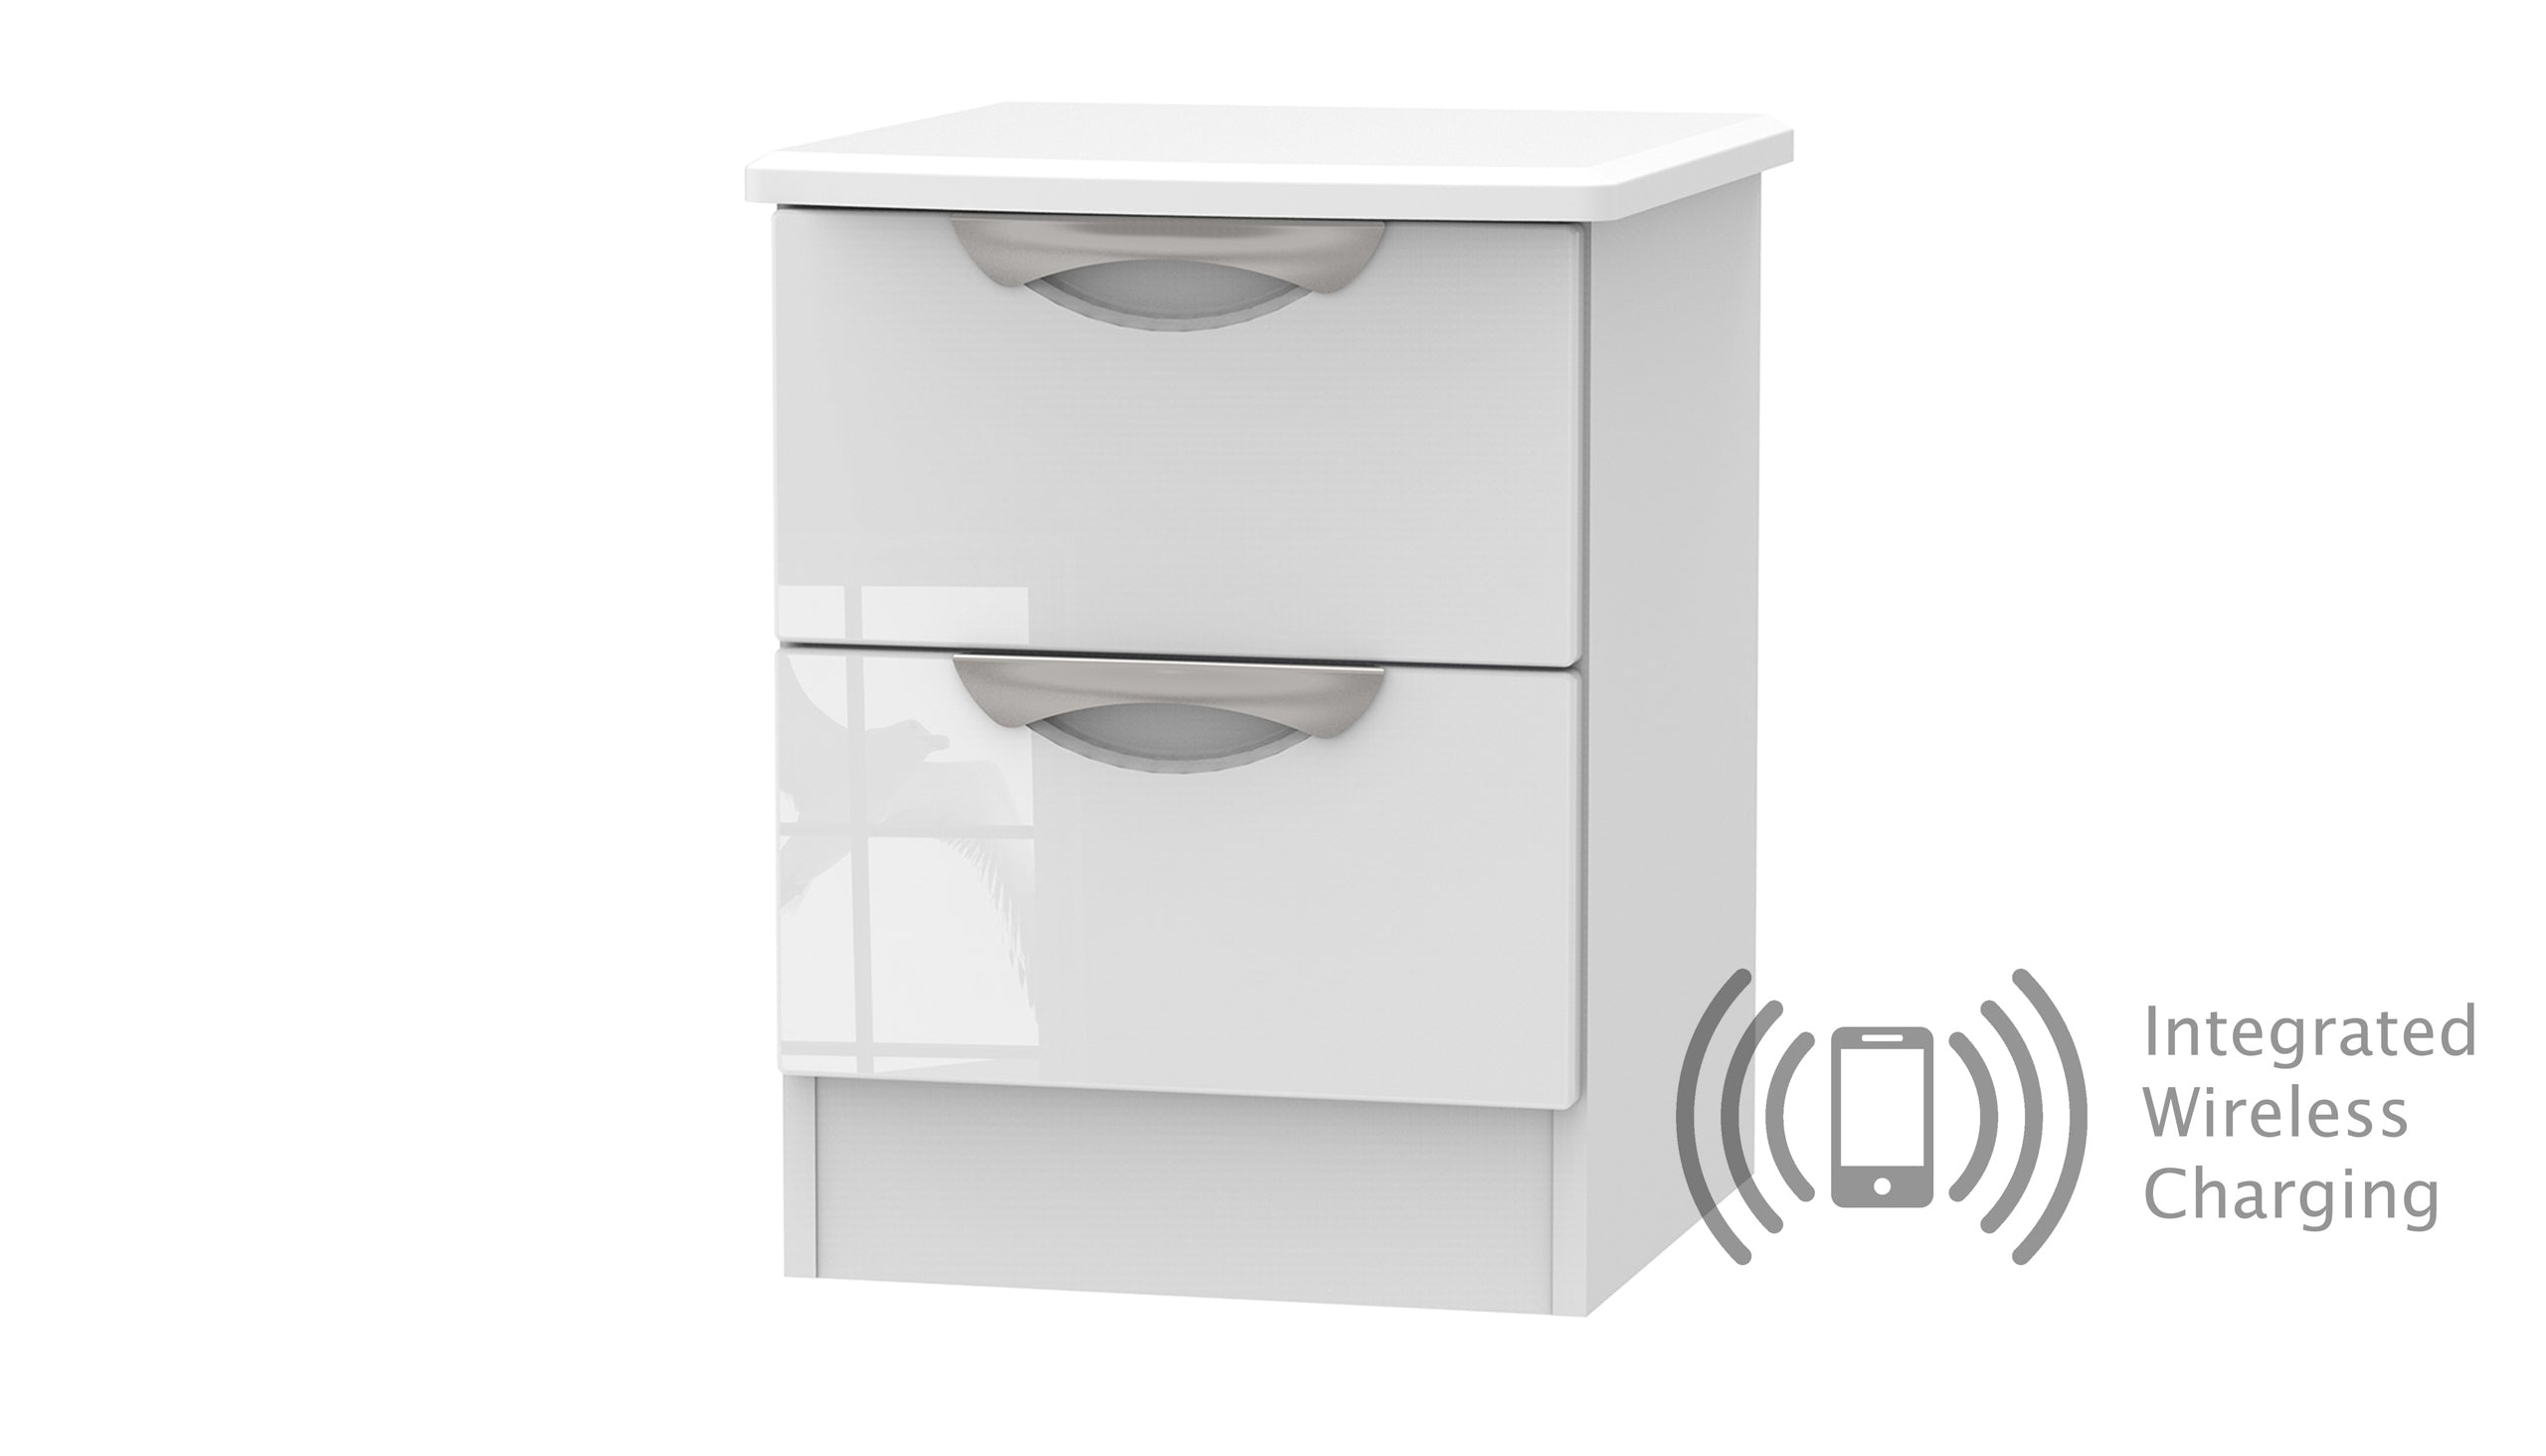 Moda 2 Drawer Bedside Chest with Wireless Charger - AHF Furniture & Carpets